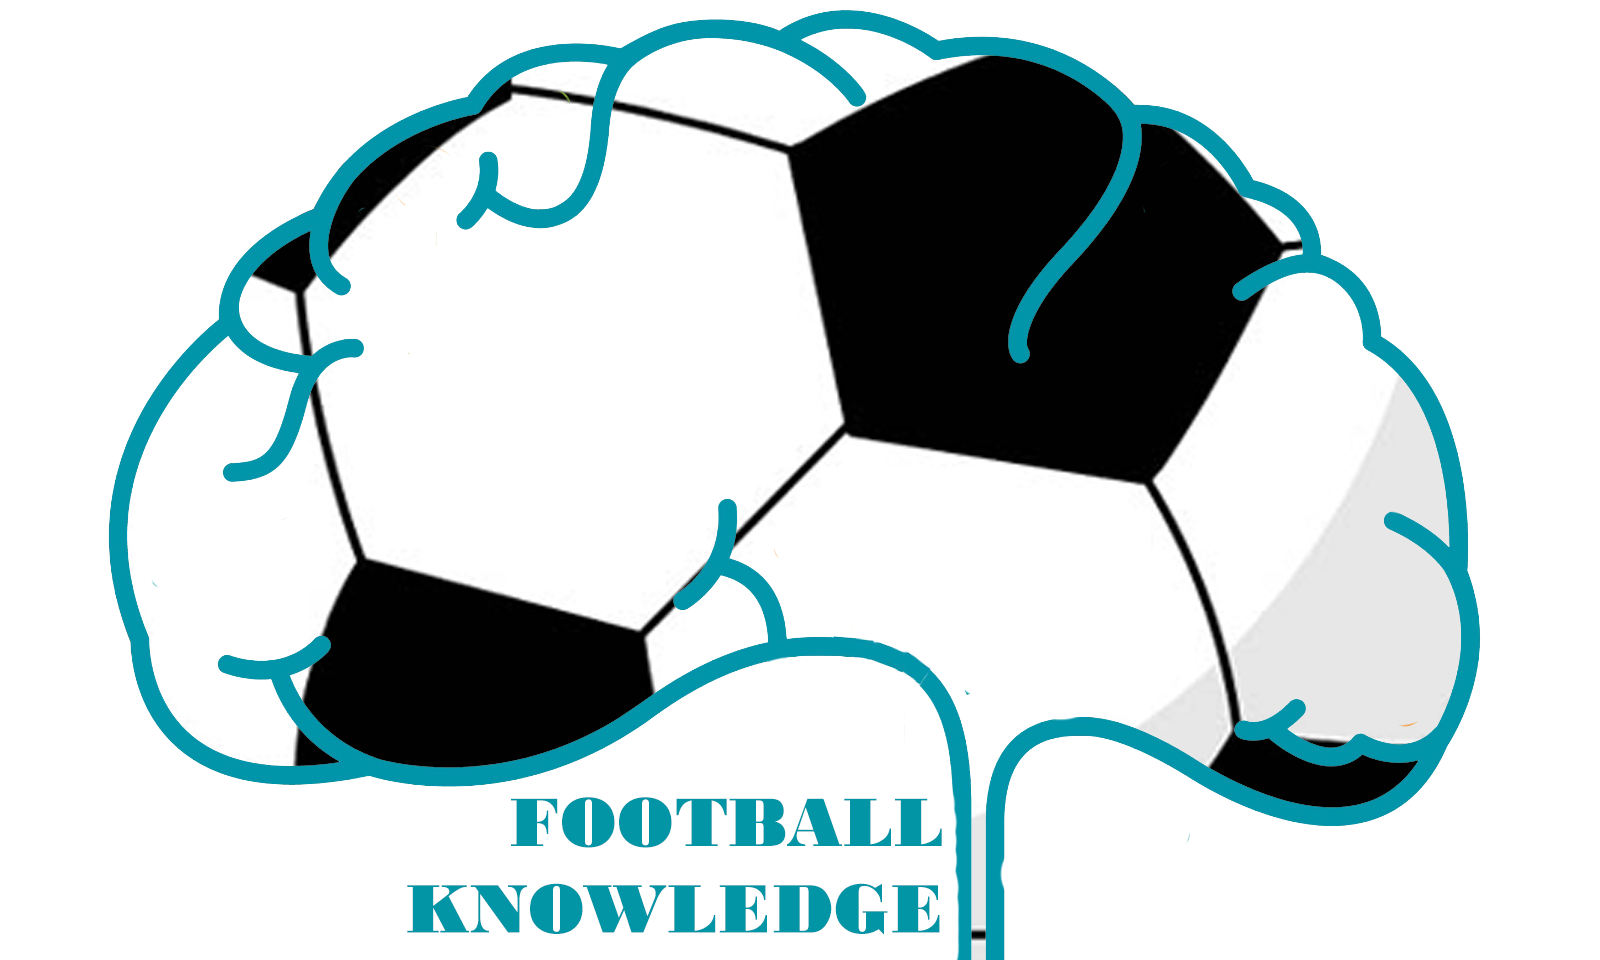 Football Knowledge #5.2: La numerologia nel calcio